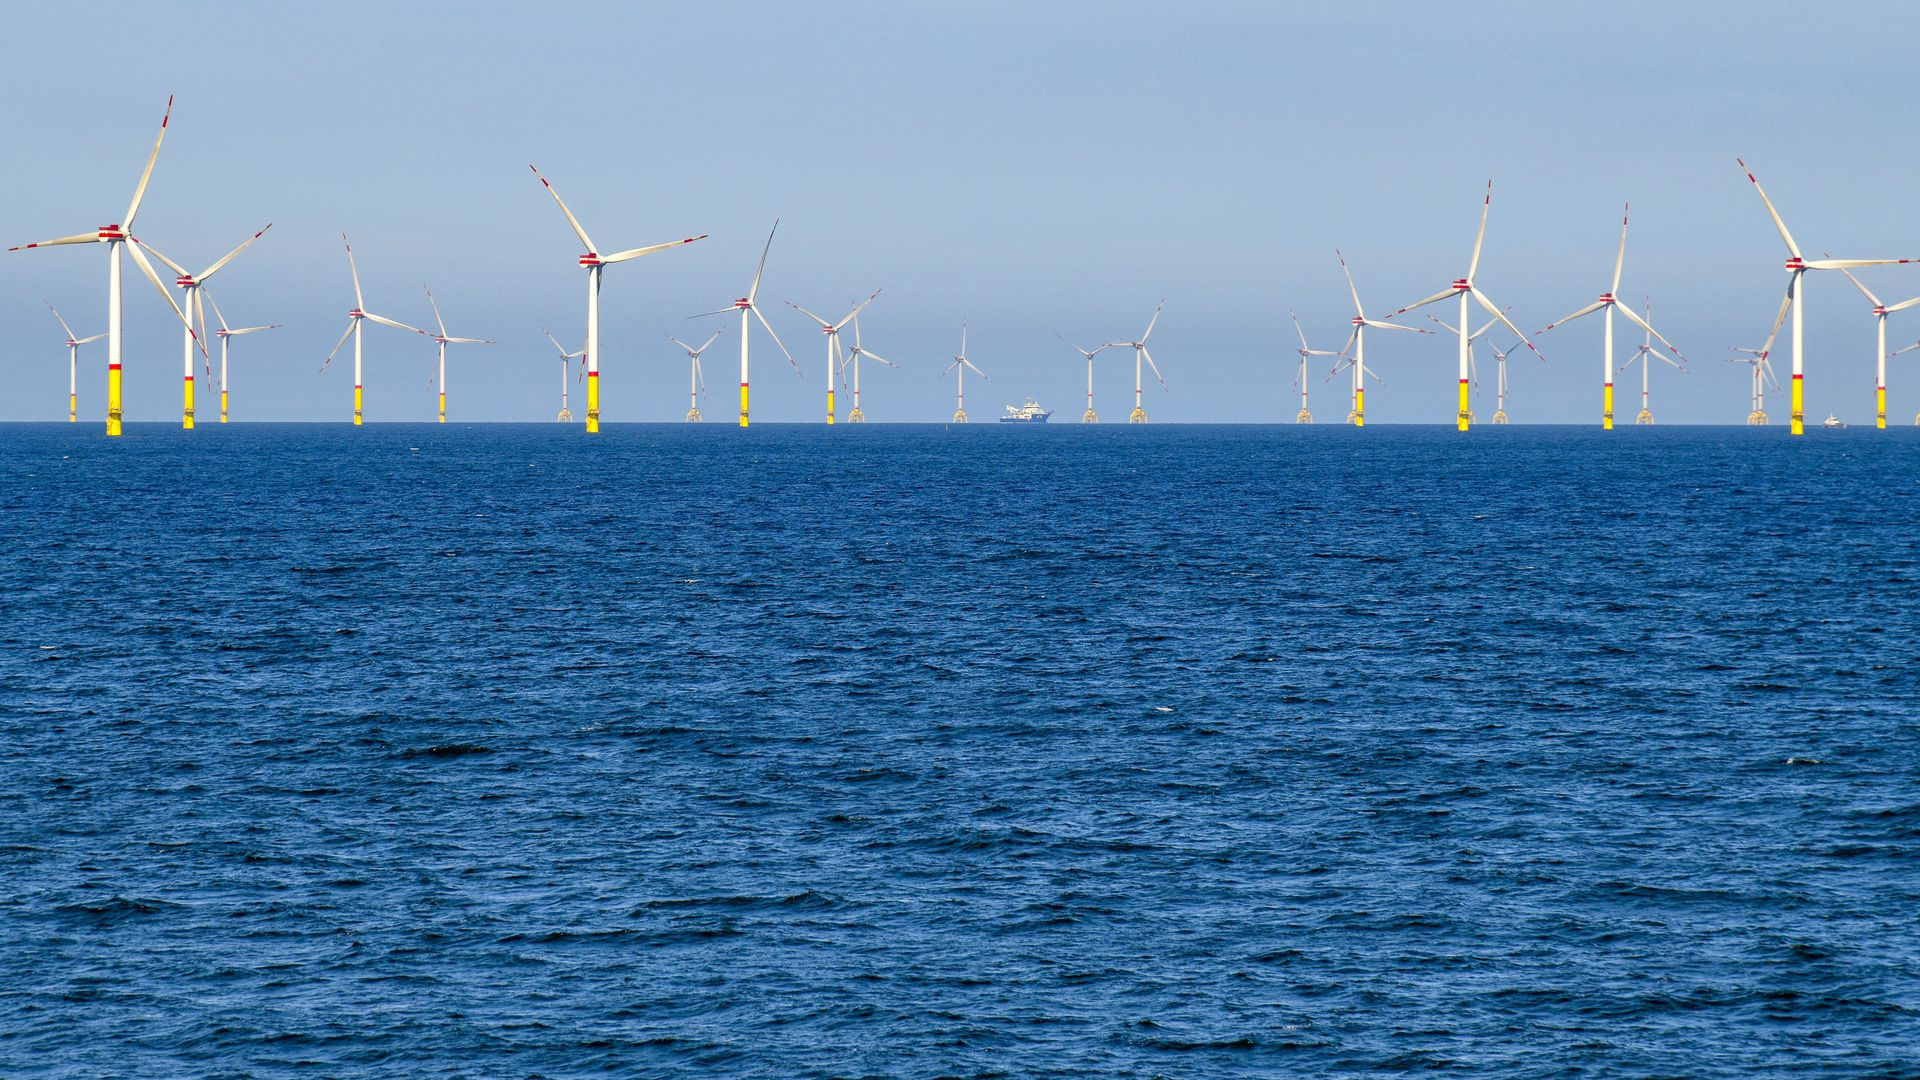 Denmark generated almost half of its electricity from wind in 2019